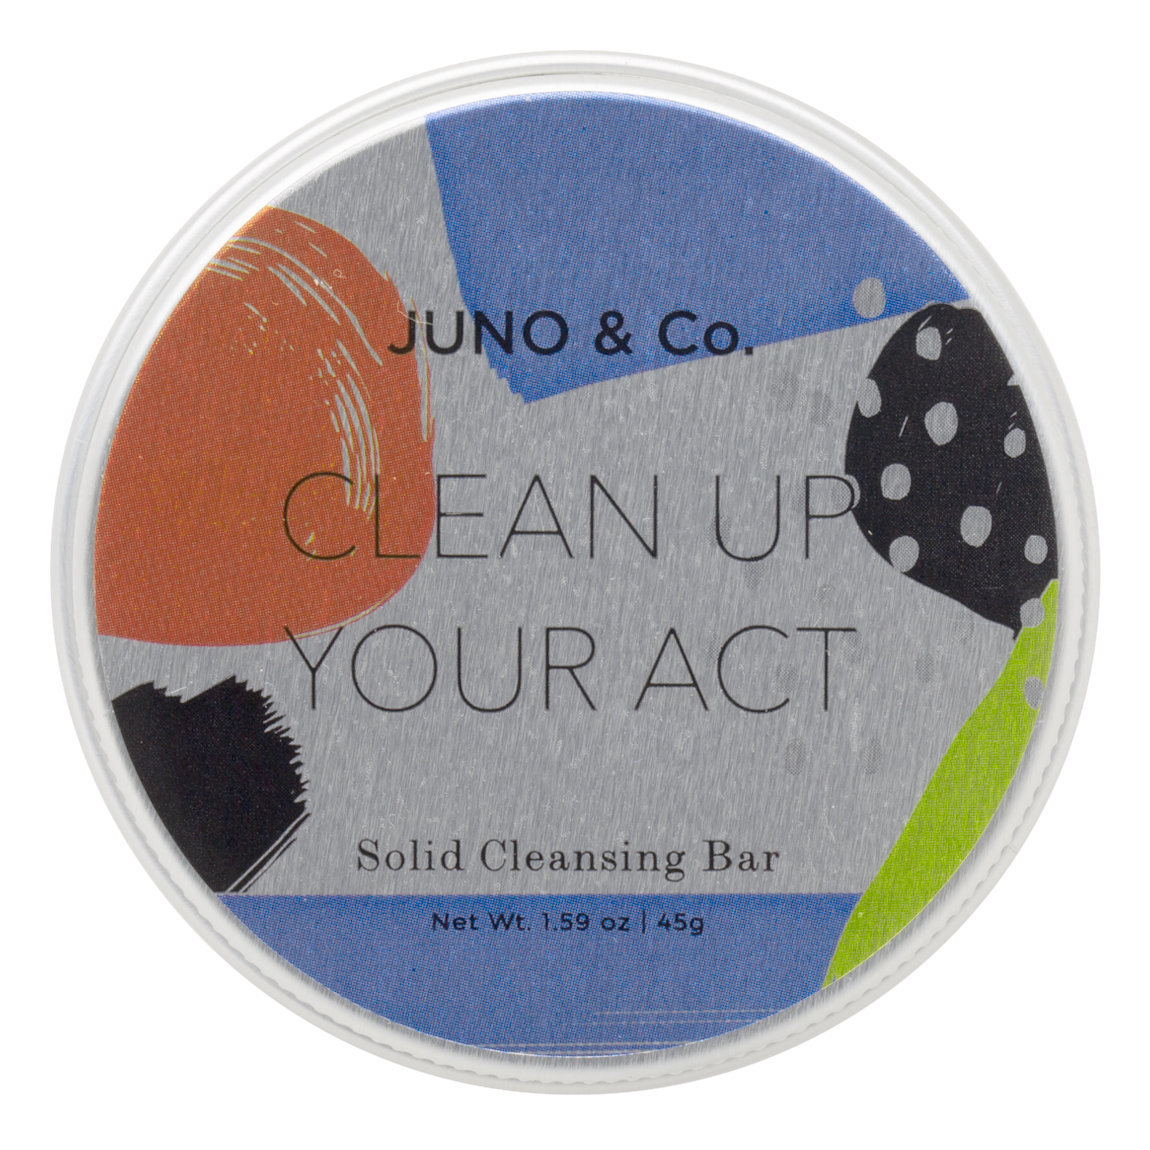 JUNO & Co. Clean Up Your Act Solid Cleansing Bar product smear.